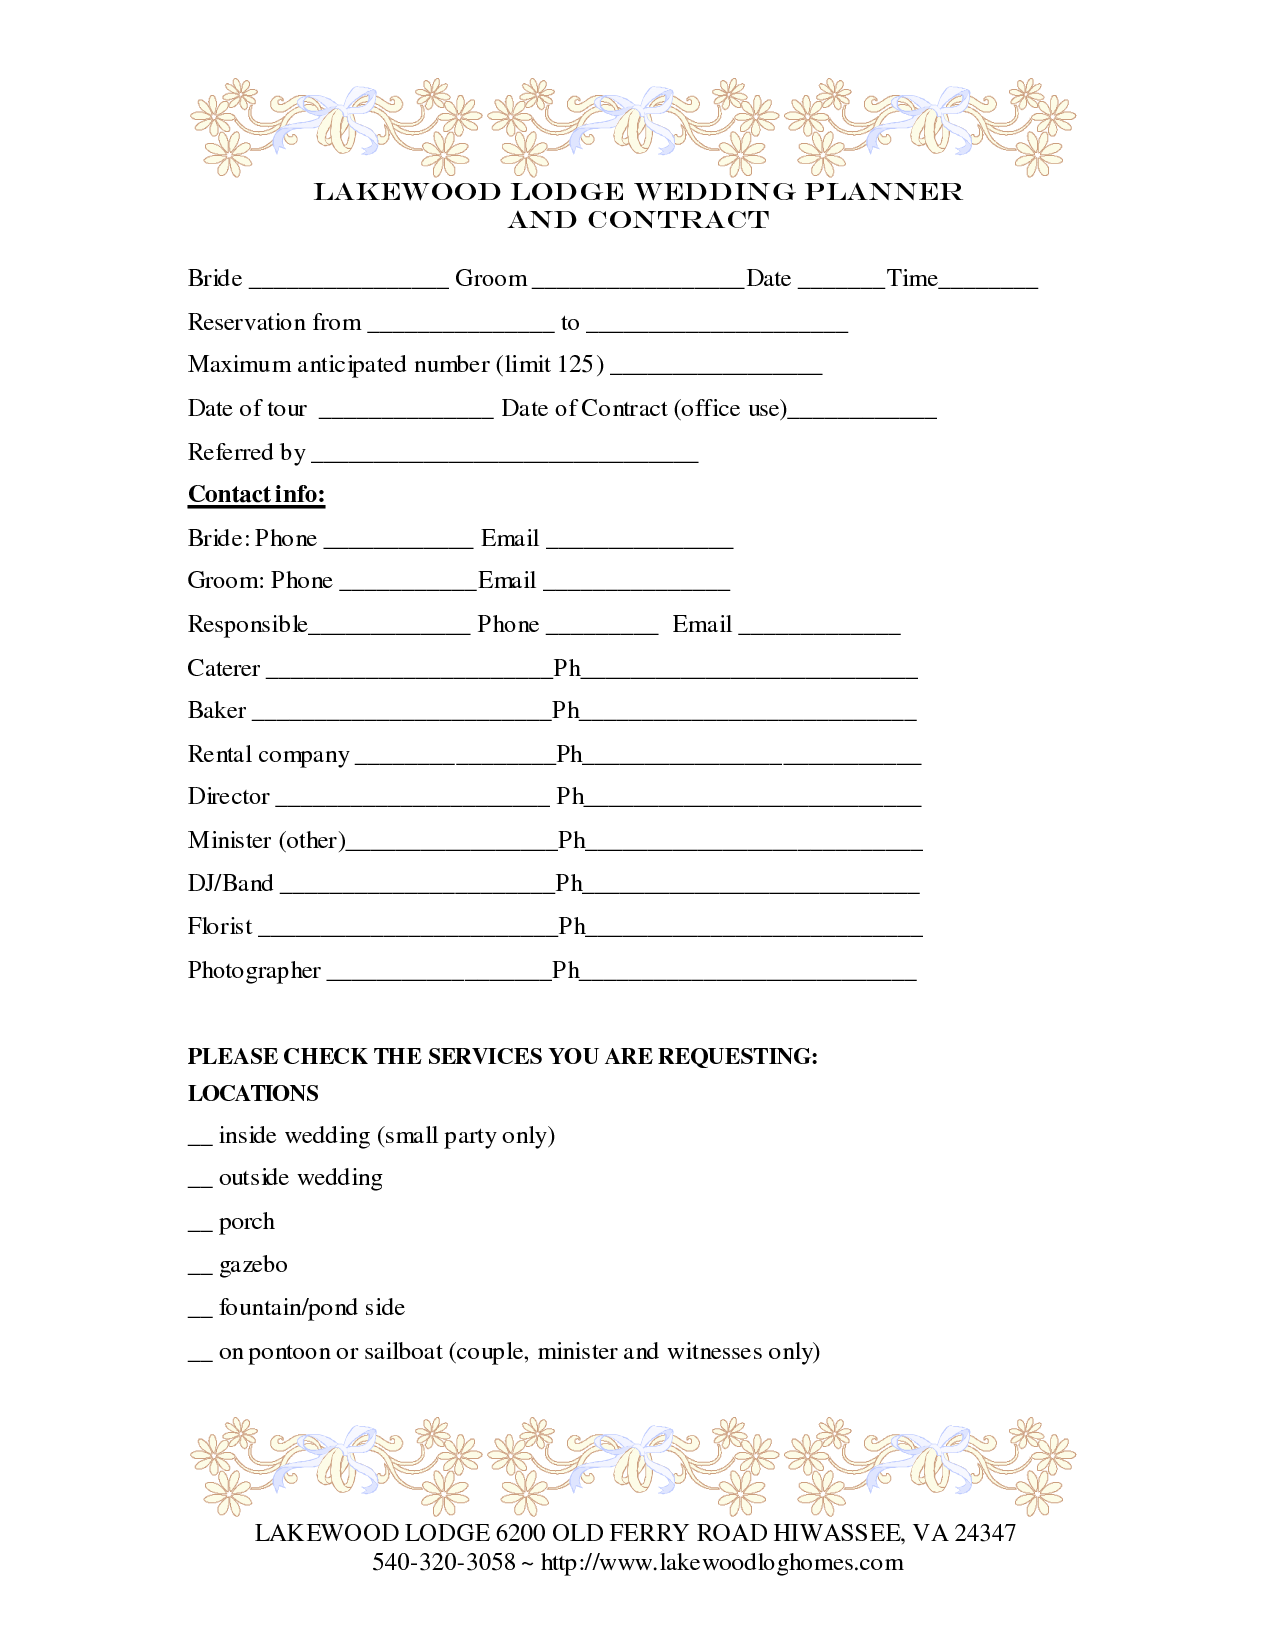 Wedding Planner Contract Template | Weddings Decorations